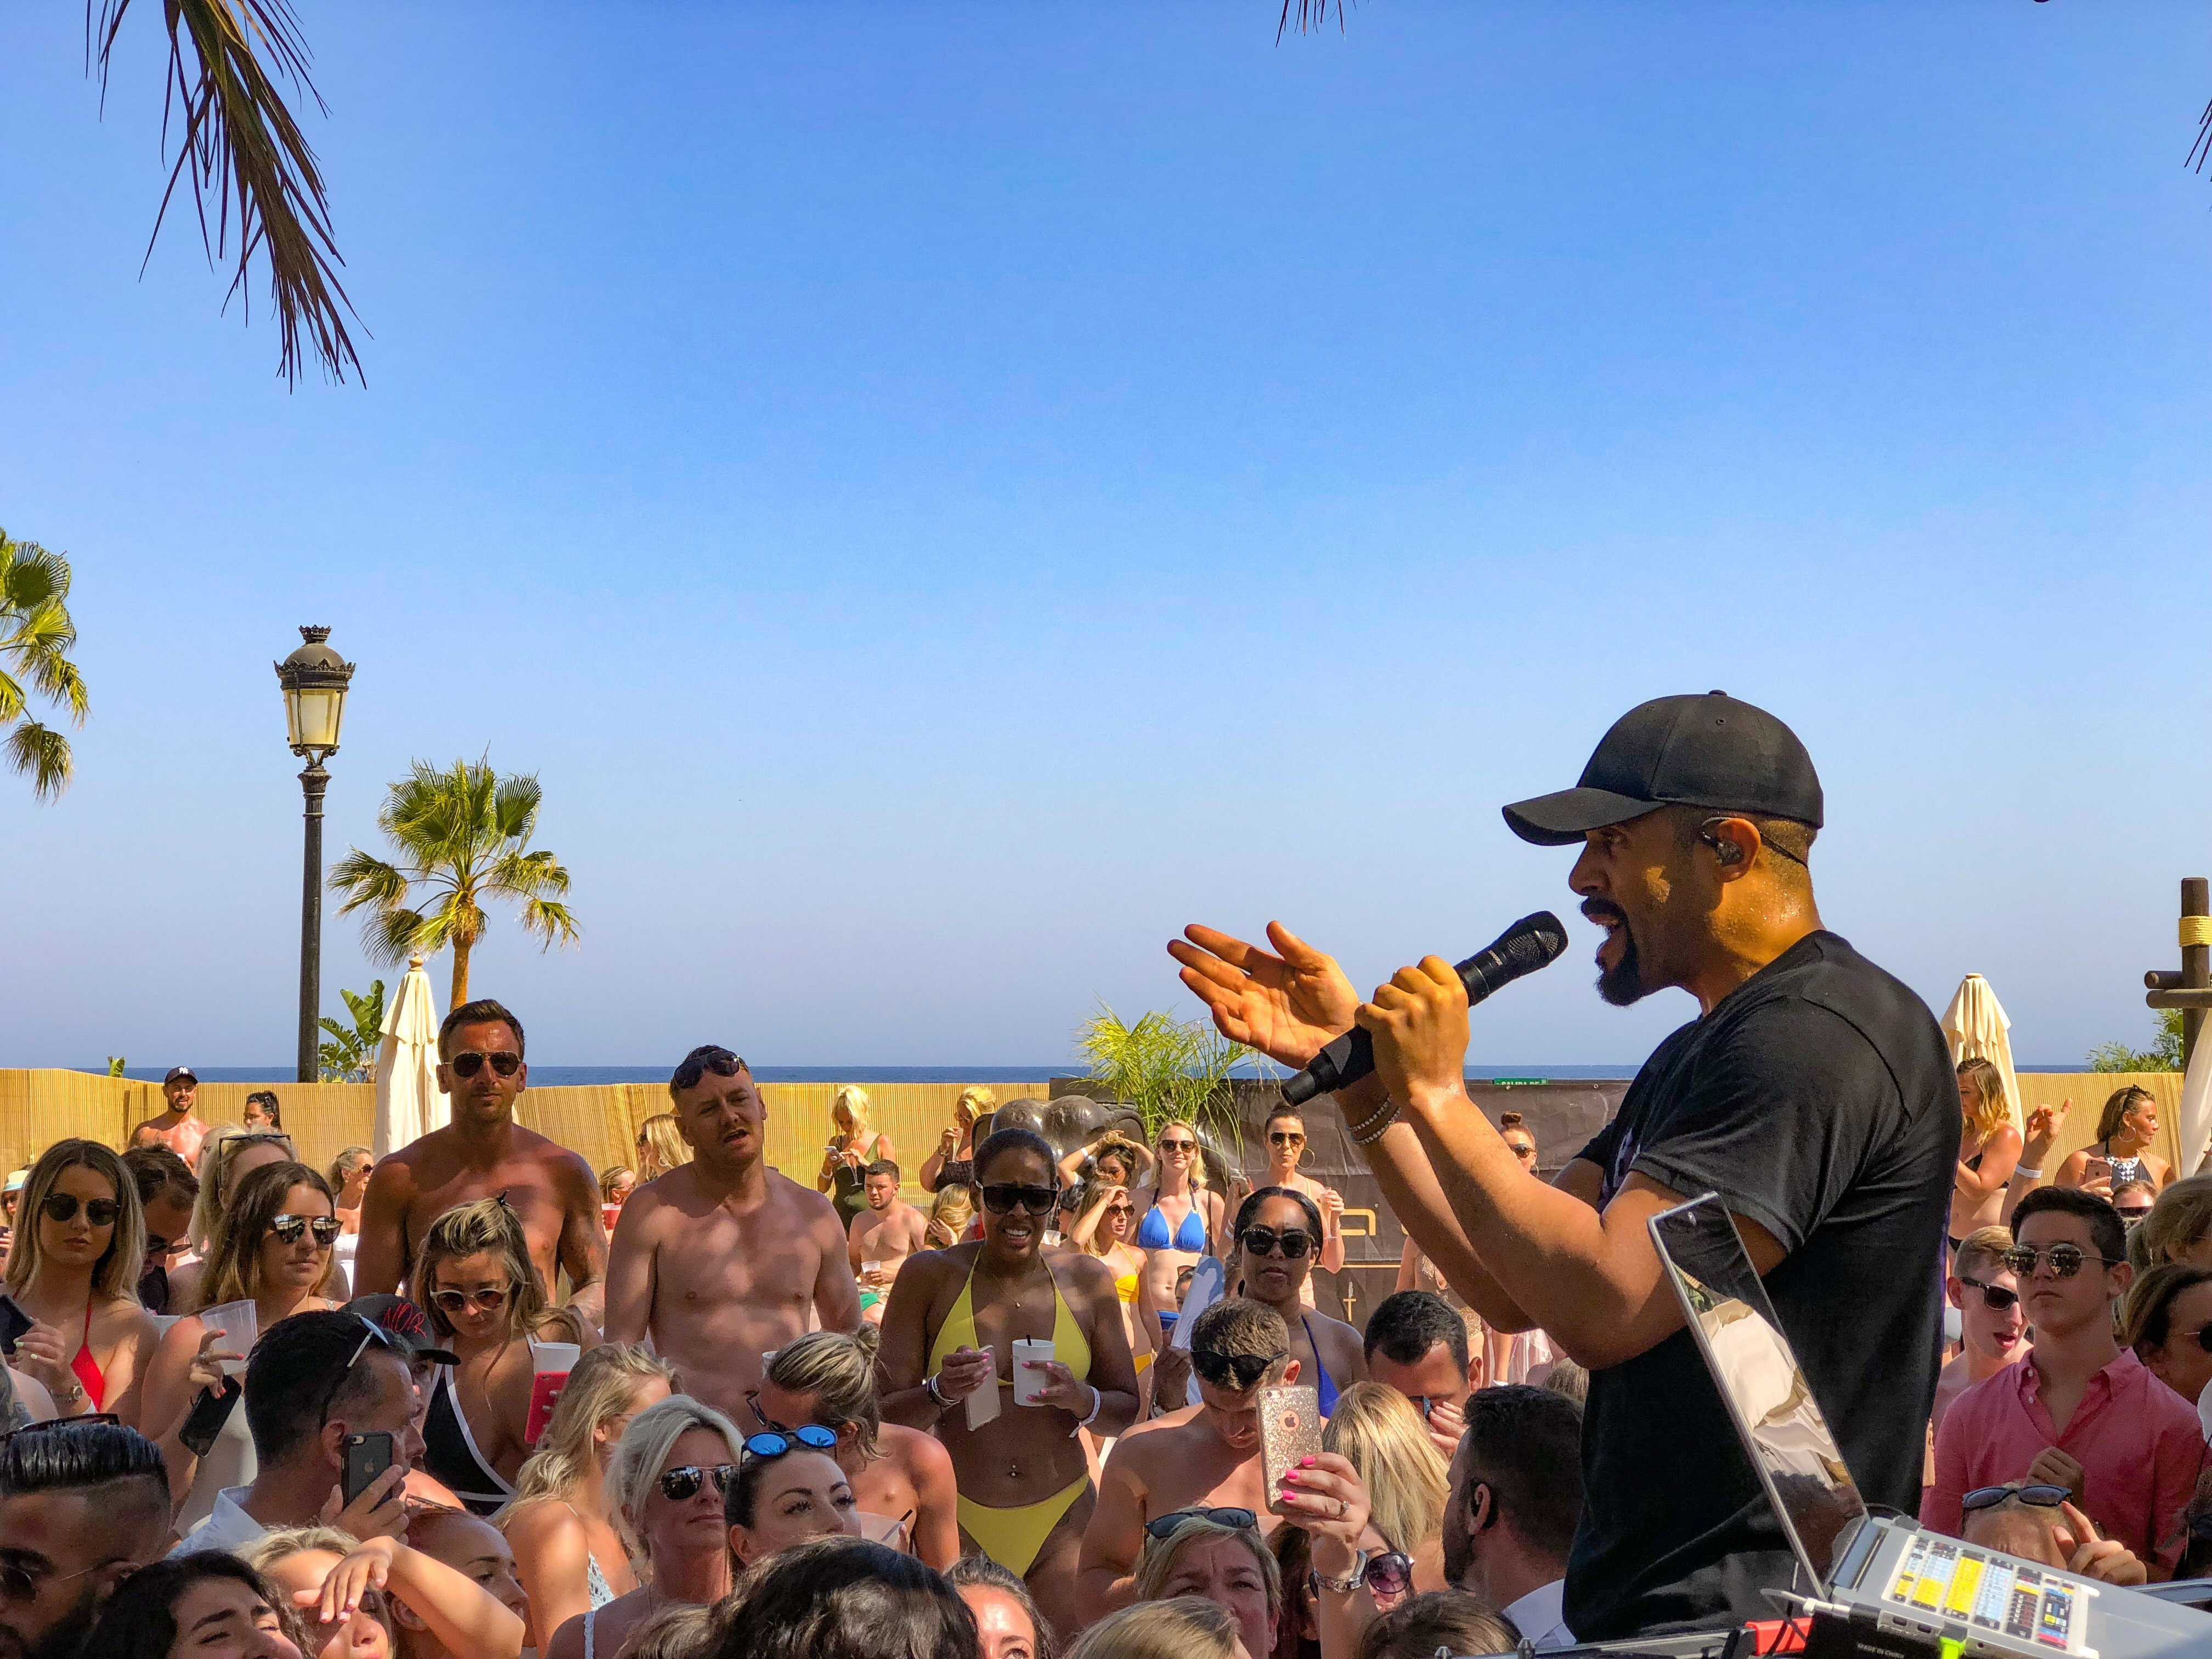 Craig David Playing at La Sala beach Club Puerto Banus Marbella